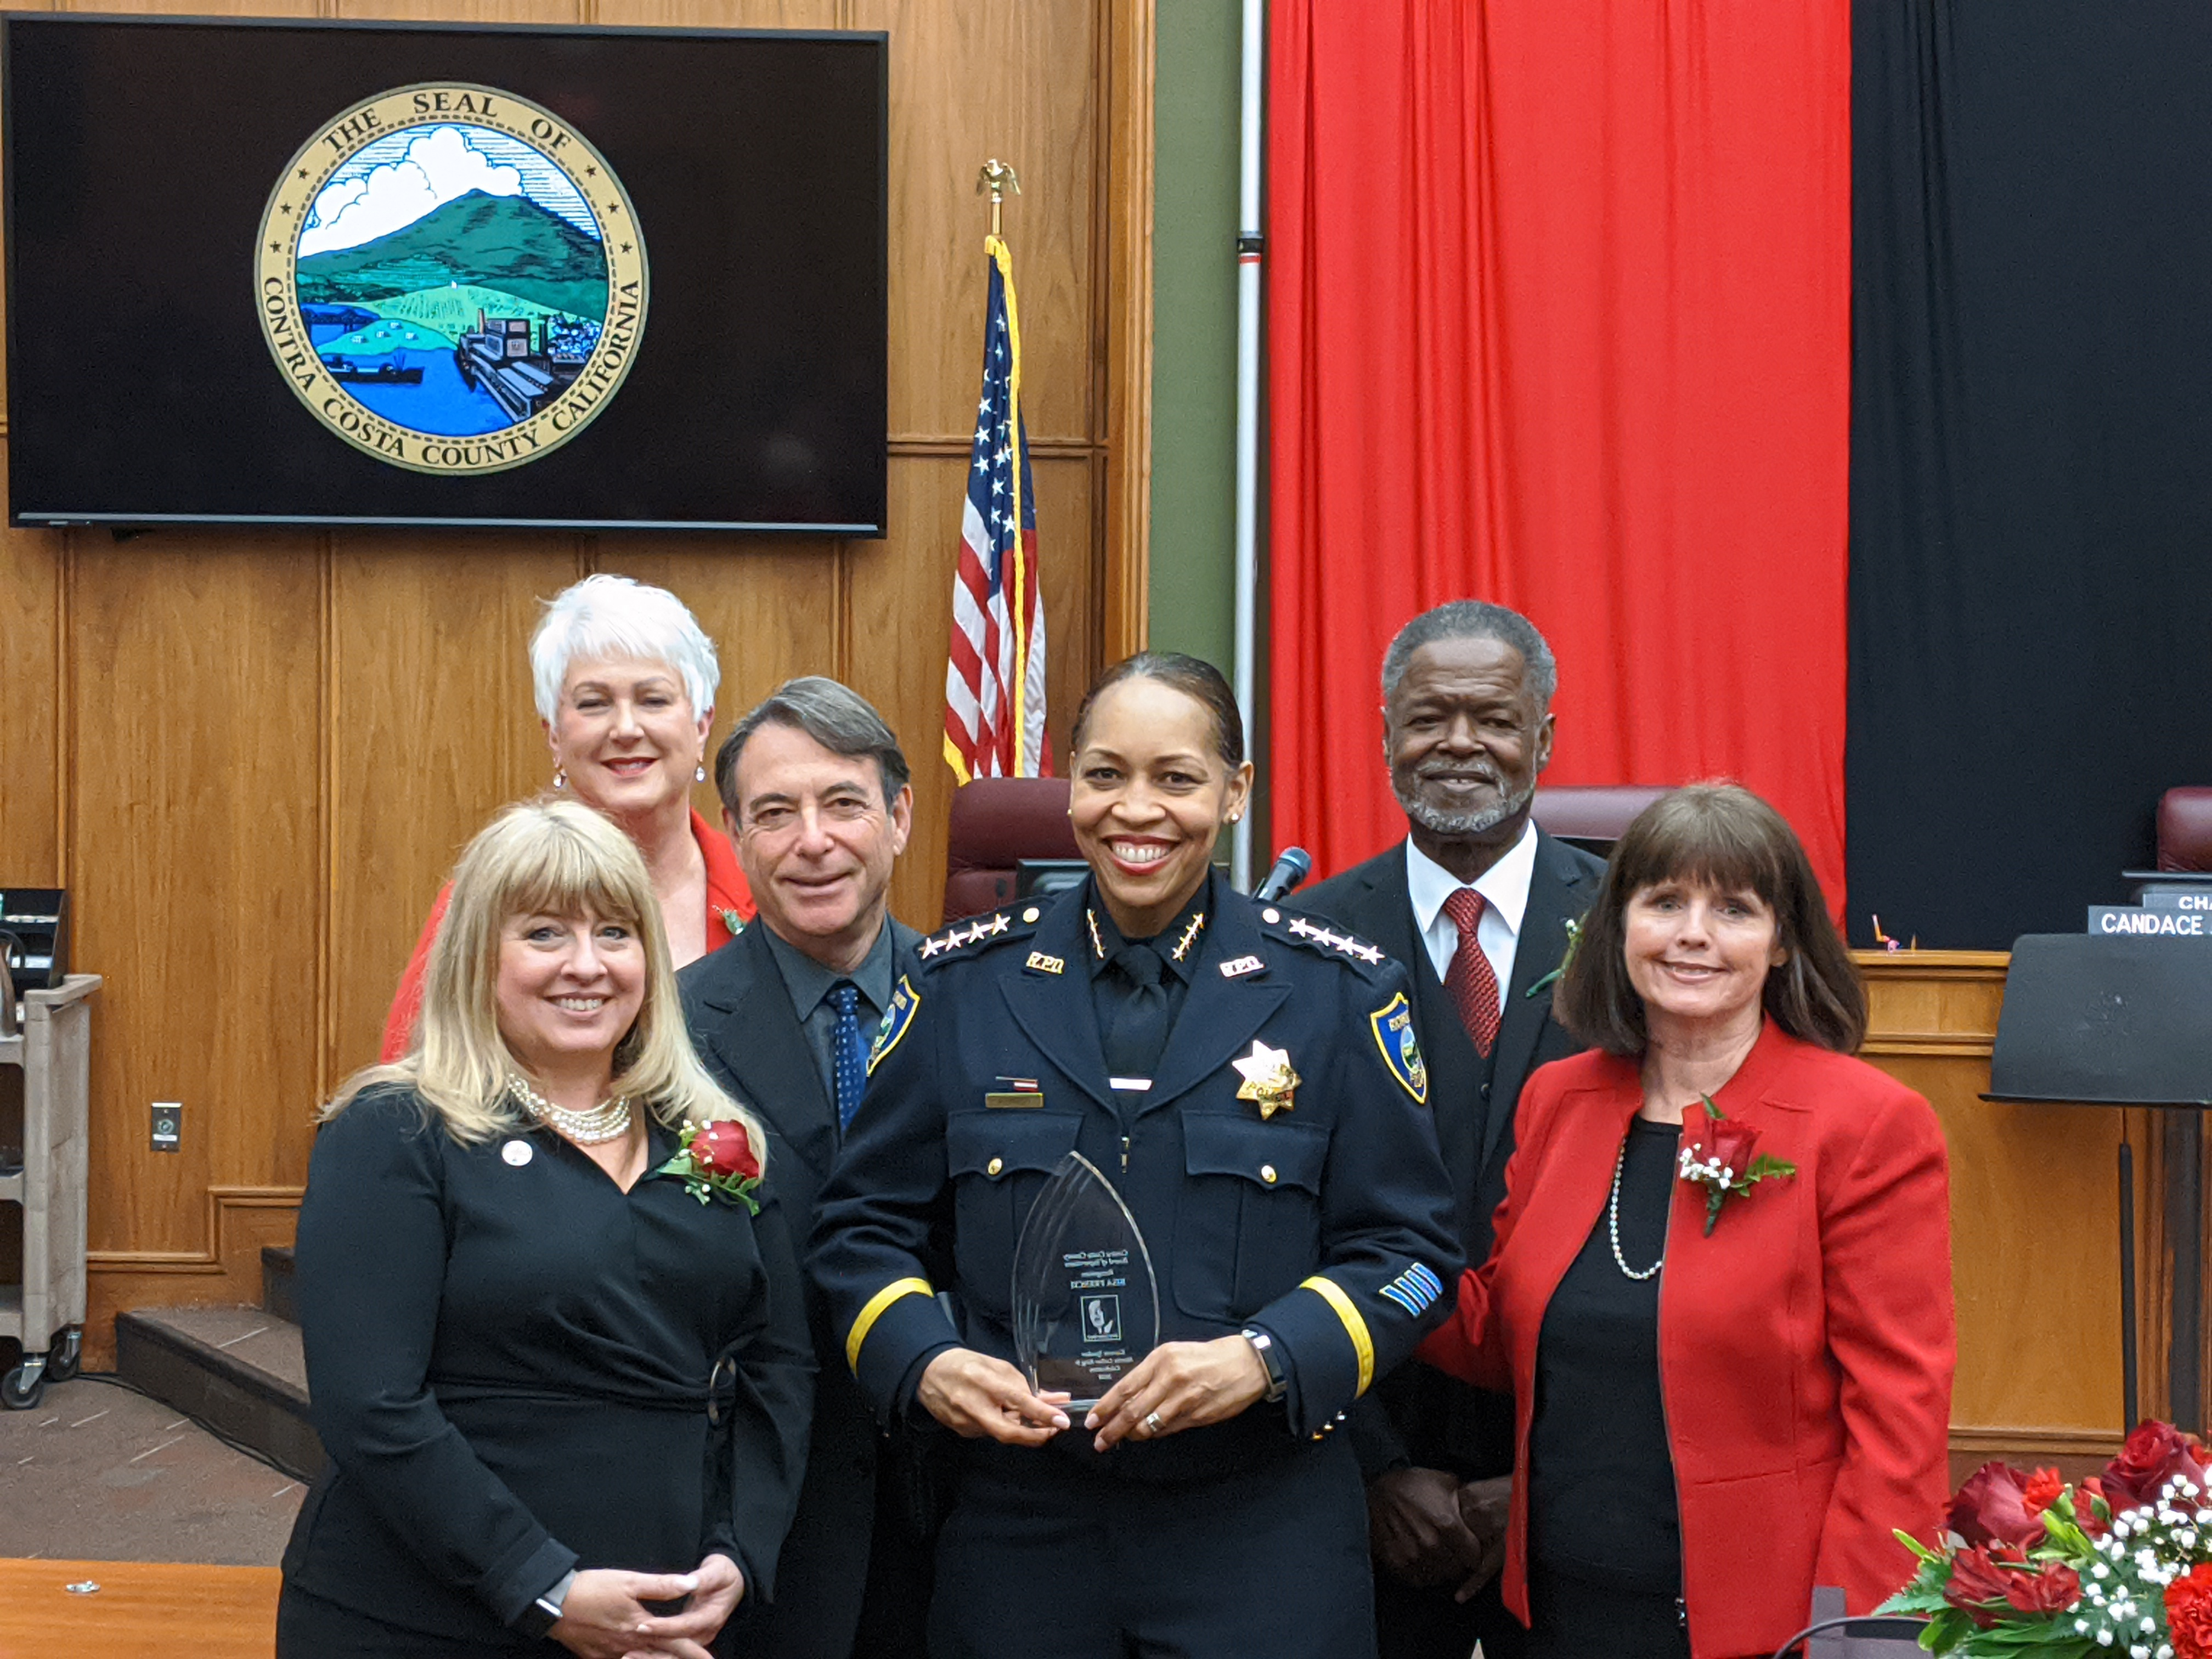 Chief French accepting award from Board of Supervisors